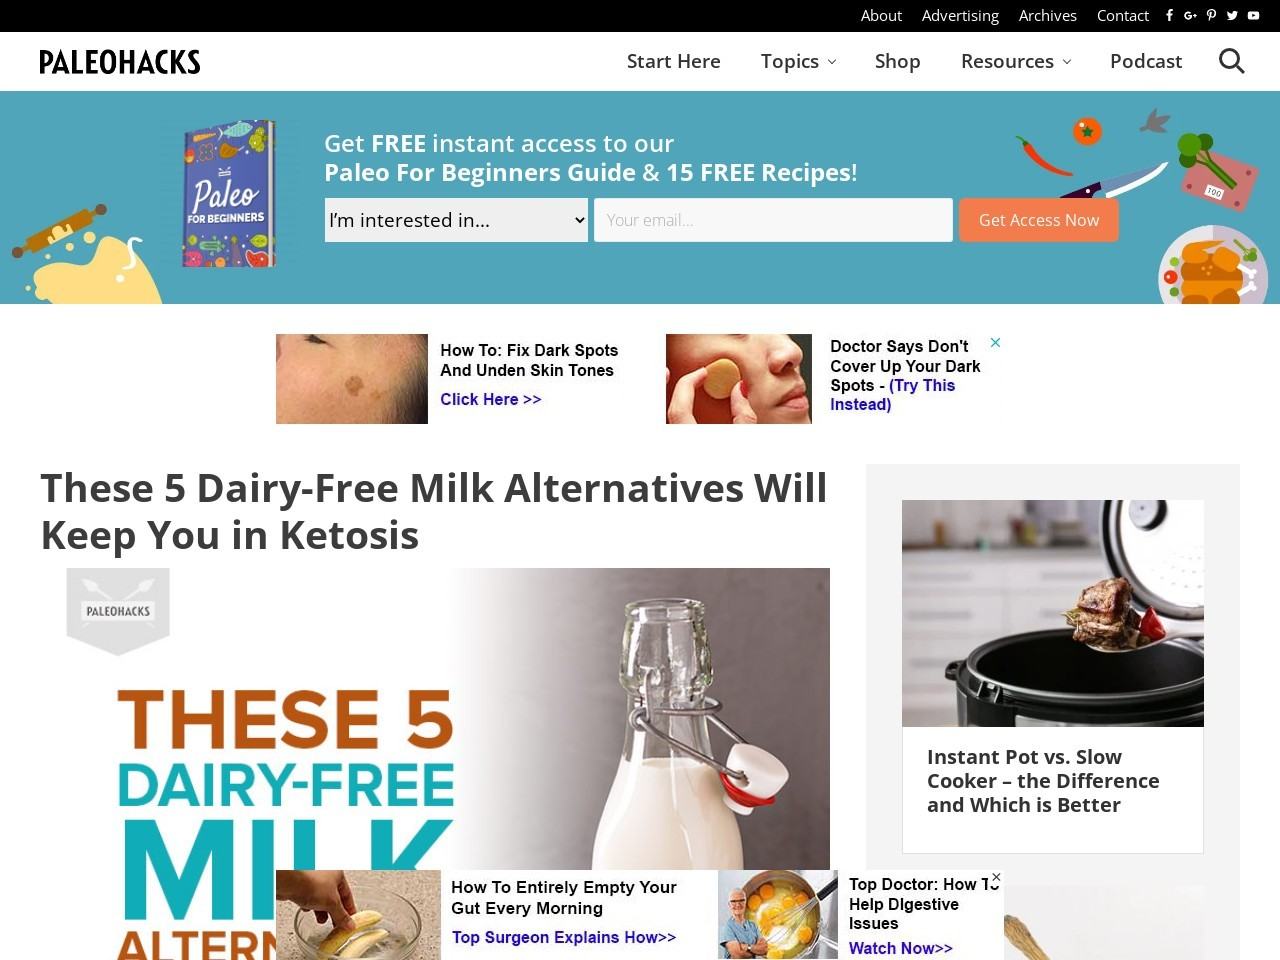 These 5 Dairy-Free Milk Alternatives Will Keep You in Ketosis